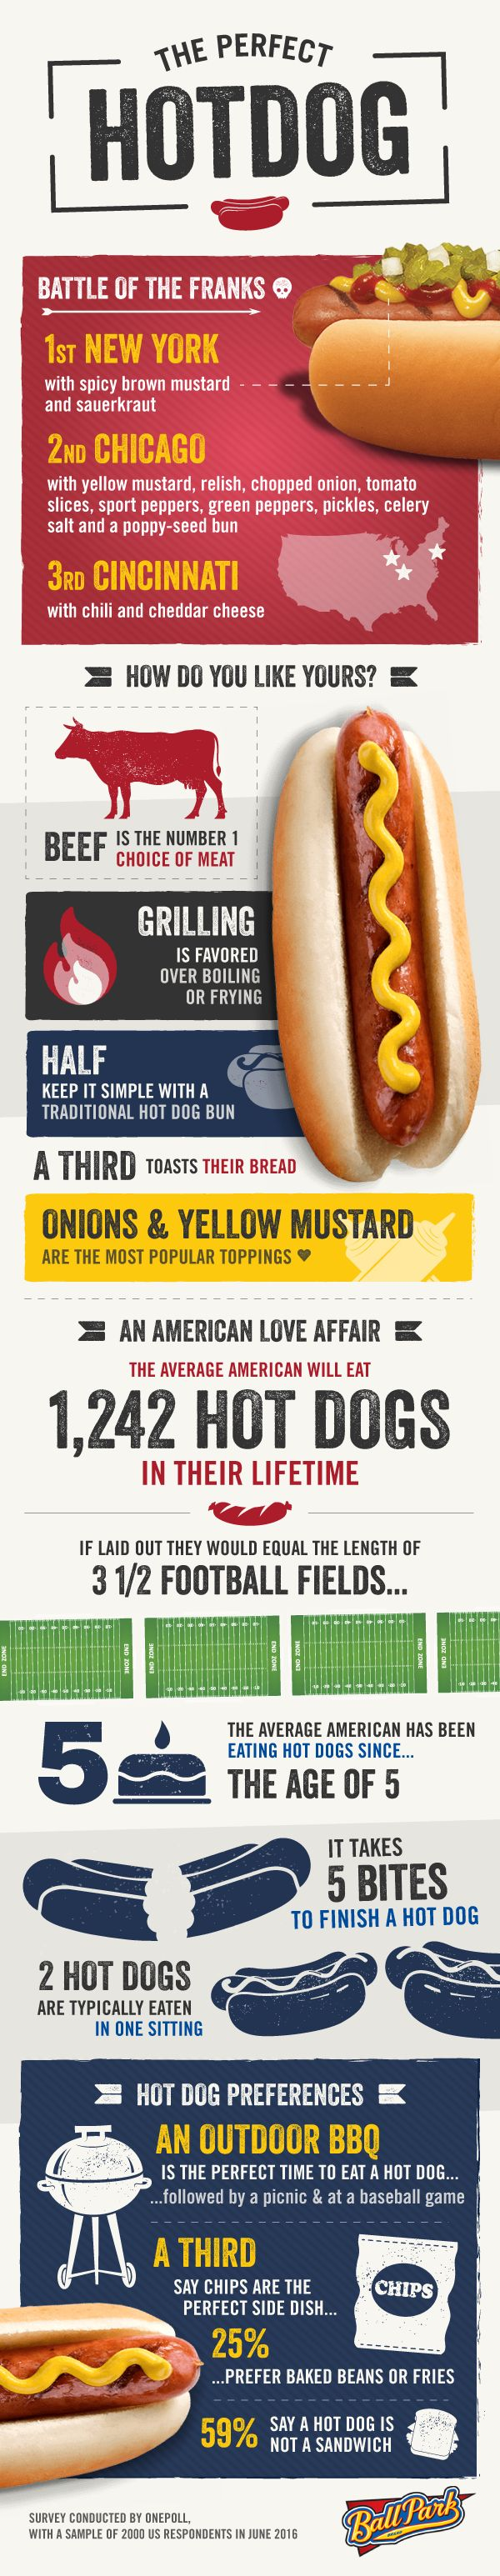 To celebrate #NationalHotDogDay in the US on the 14th July sausage brand Ball Park wanted to find out what made the perfect Hot Dog. Did you know? The average American loves hot dogs so much that they will eat 1,242 hot dogs in their lifetime! #hotdog #bbq #food #USA